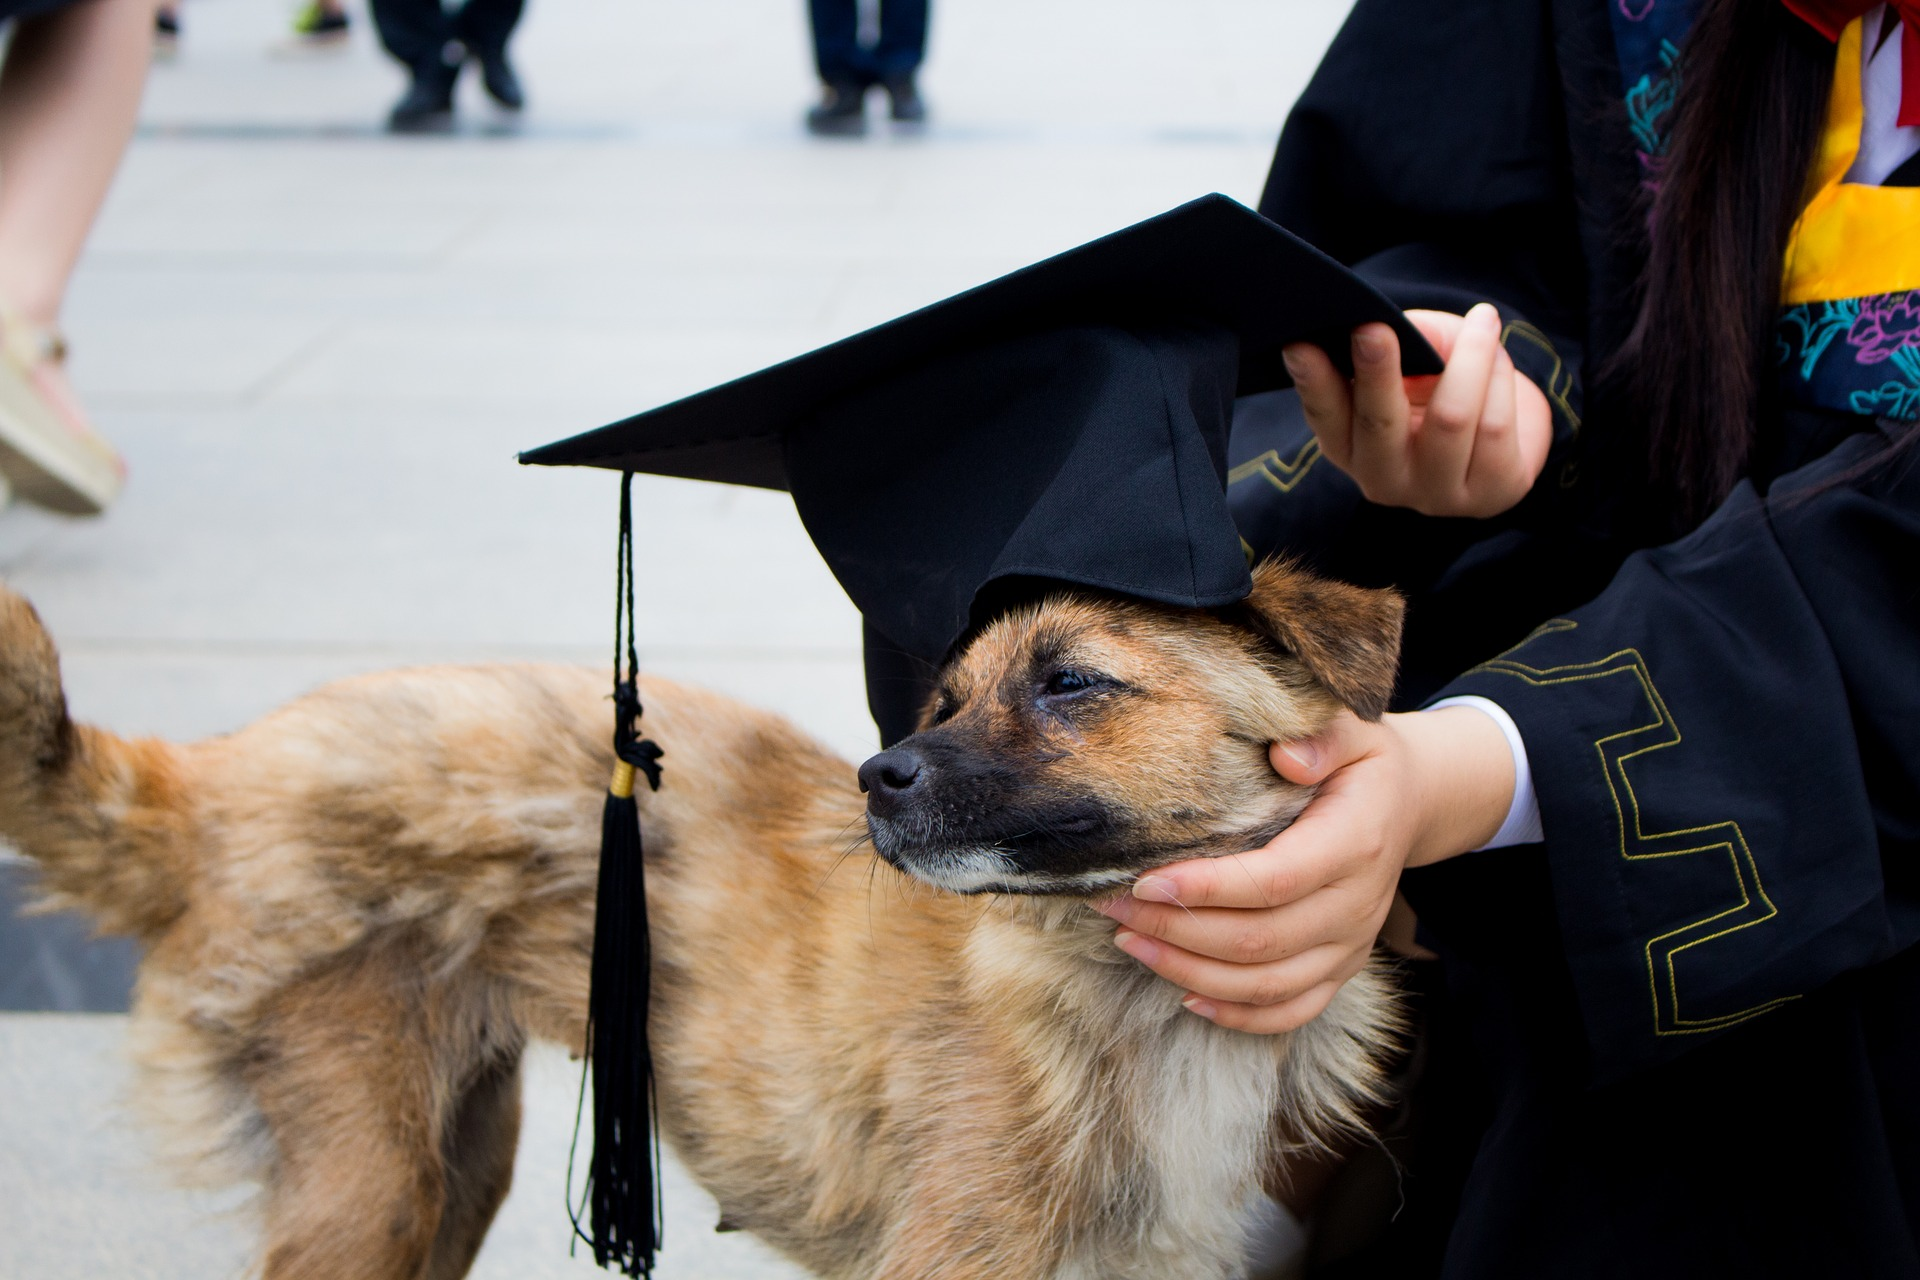 Small mixed breed dog with a graduation cap placed on its head